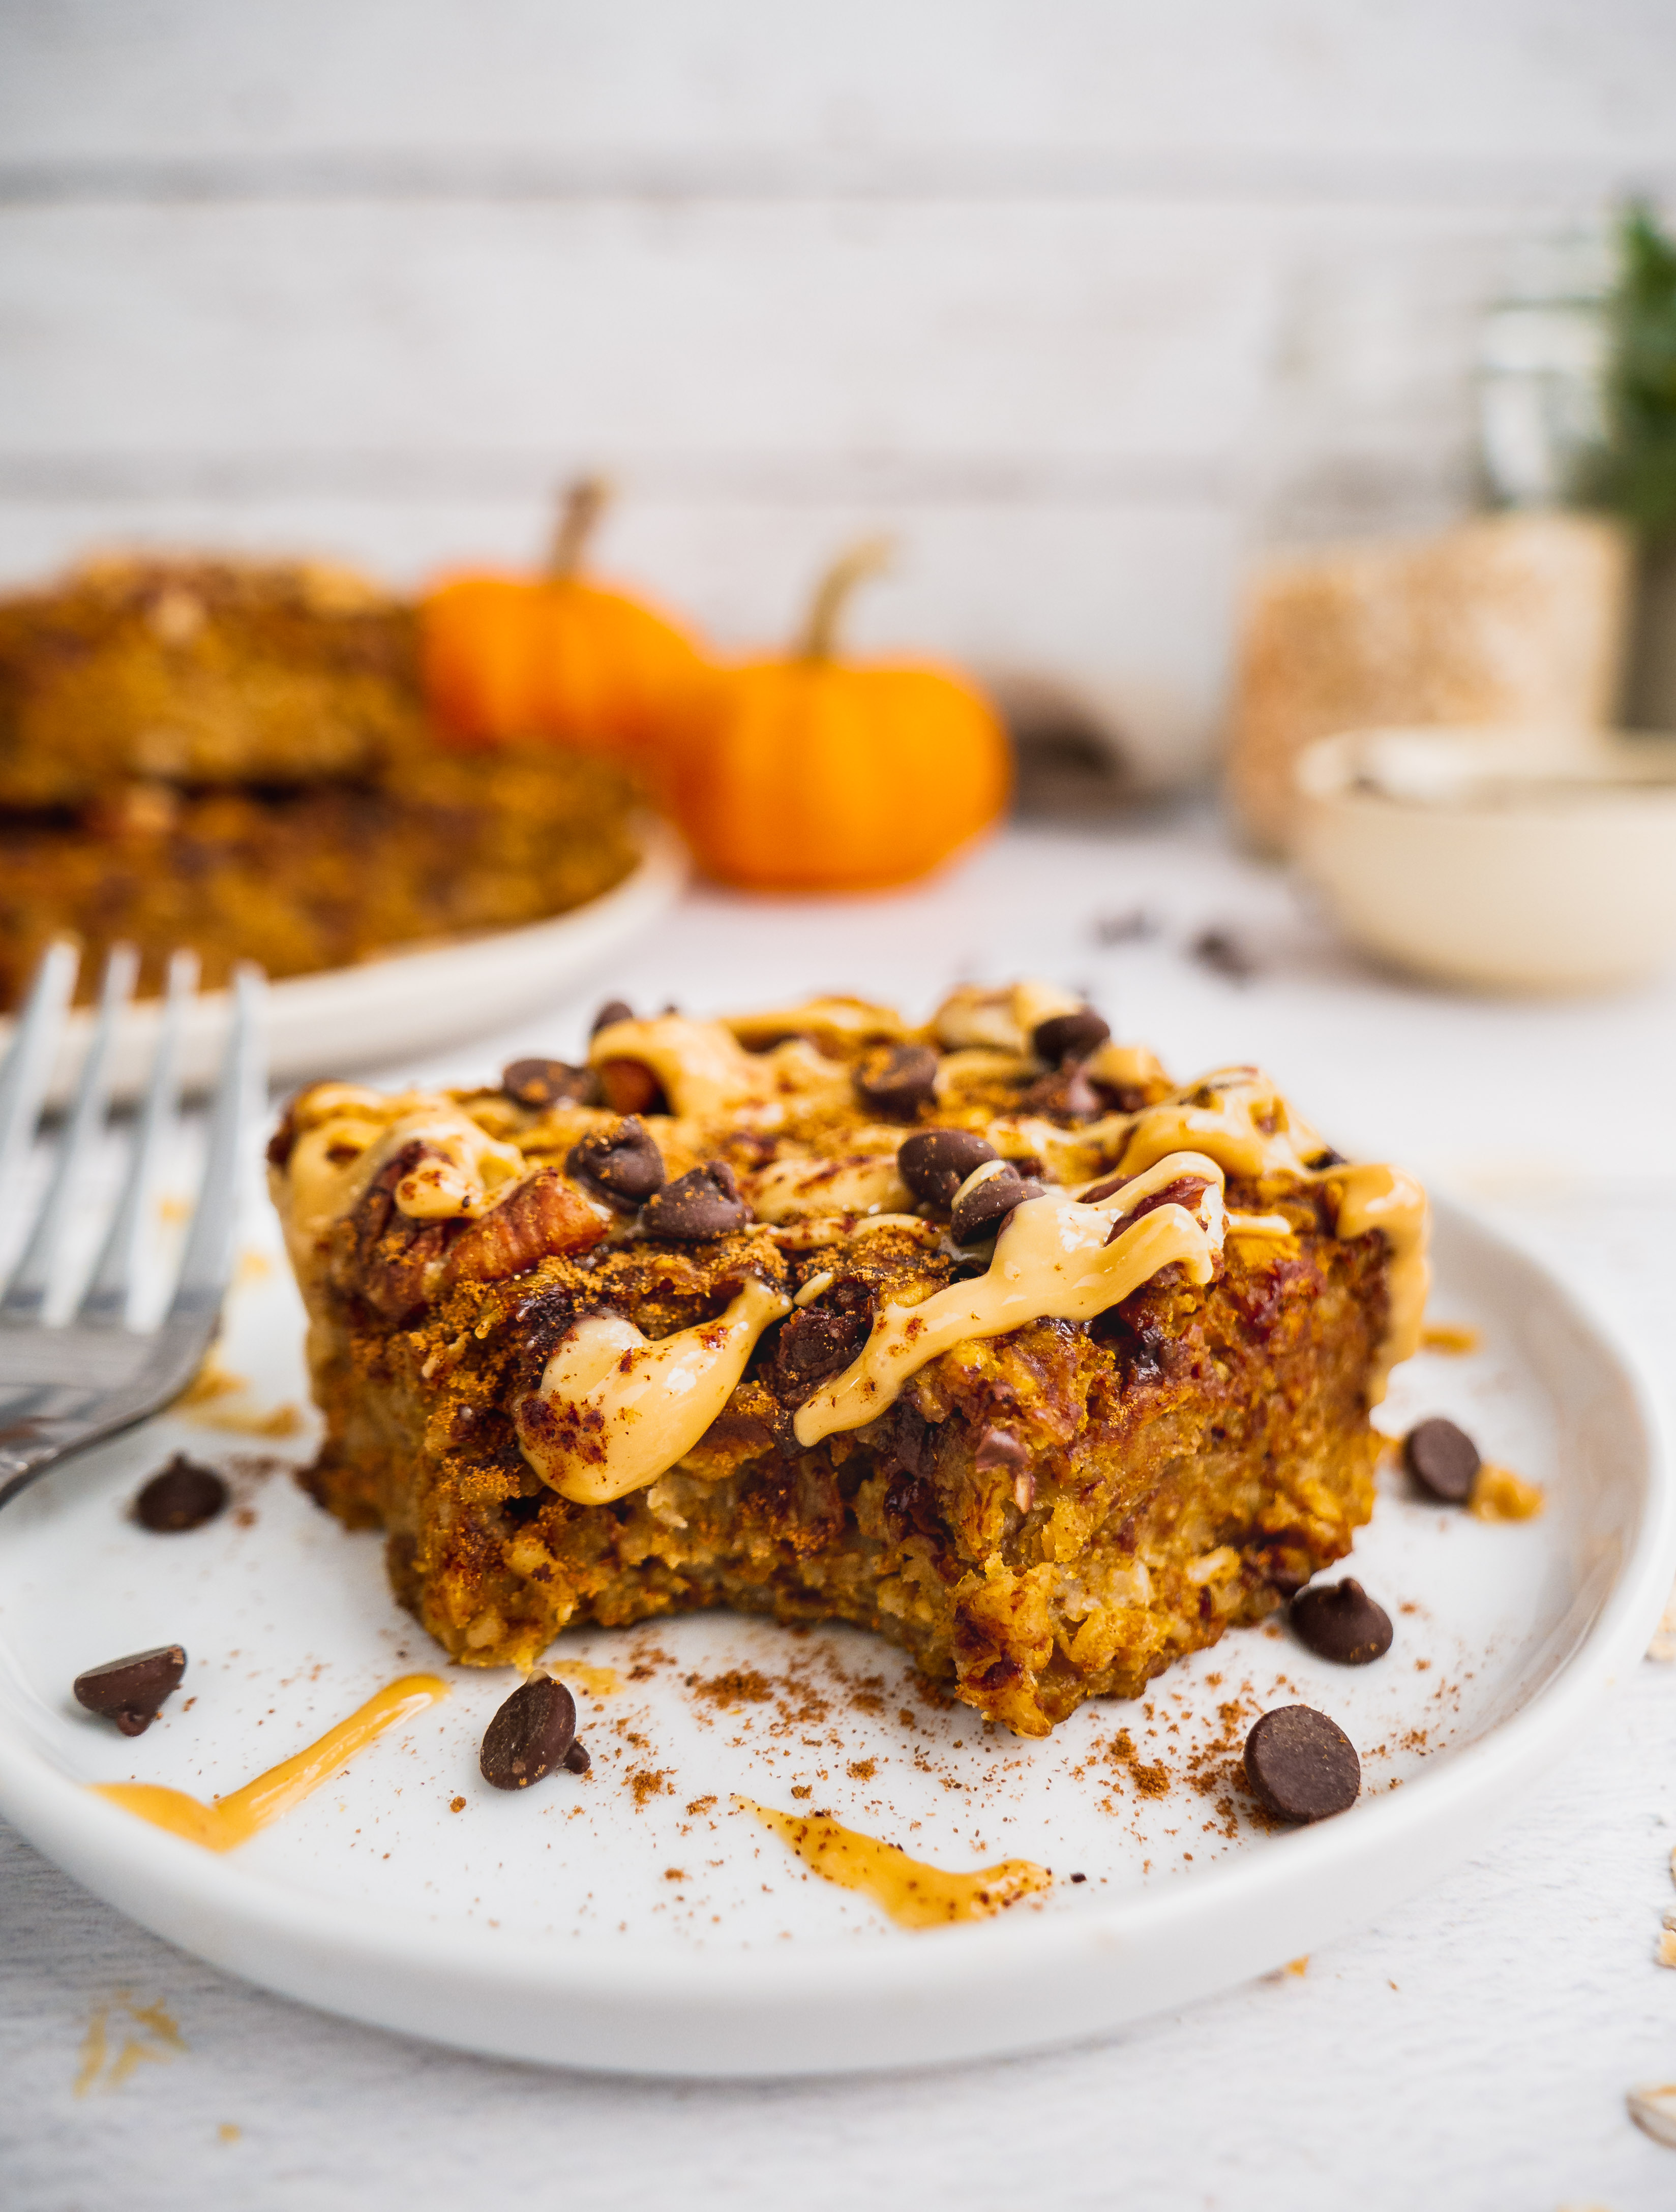 A piece of pumpkin oatmeal breakfast bars topped with peanut butter, chocolate chip and cinnamon with a bite. In the background there are more bars and pumpkins and a jar of gluten free oats.